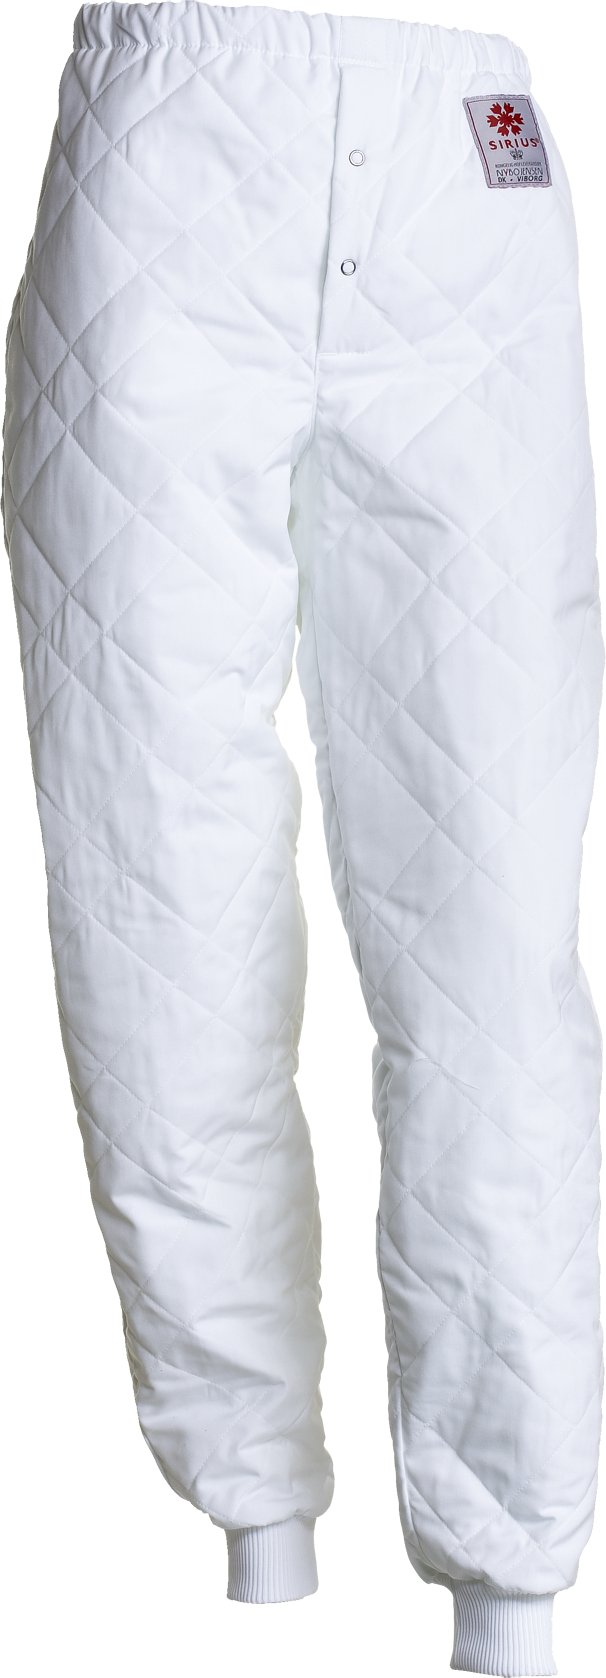 Thermal trousers, Clima Sport (401001100) - NOOS